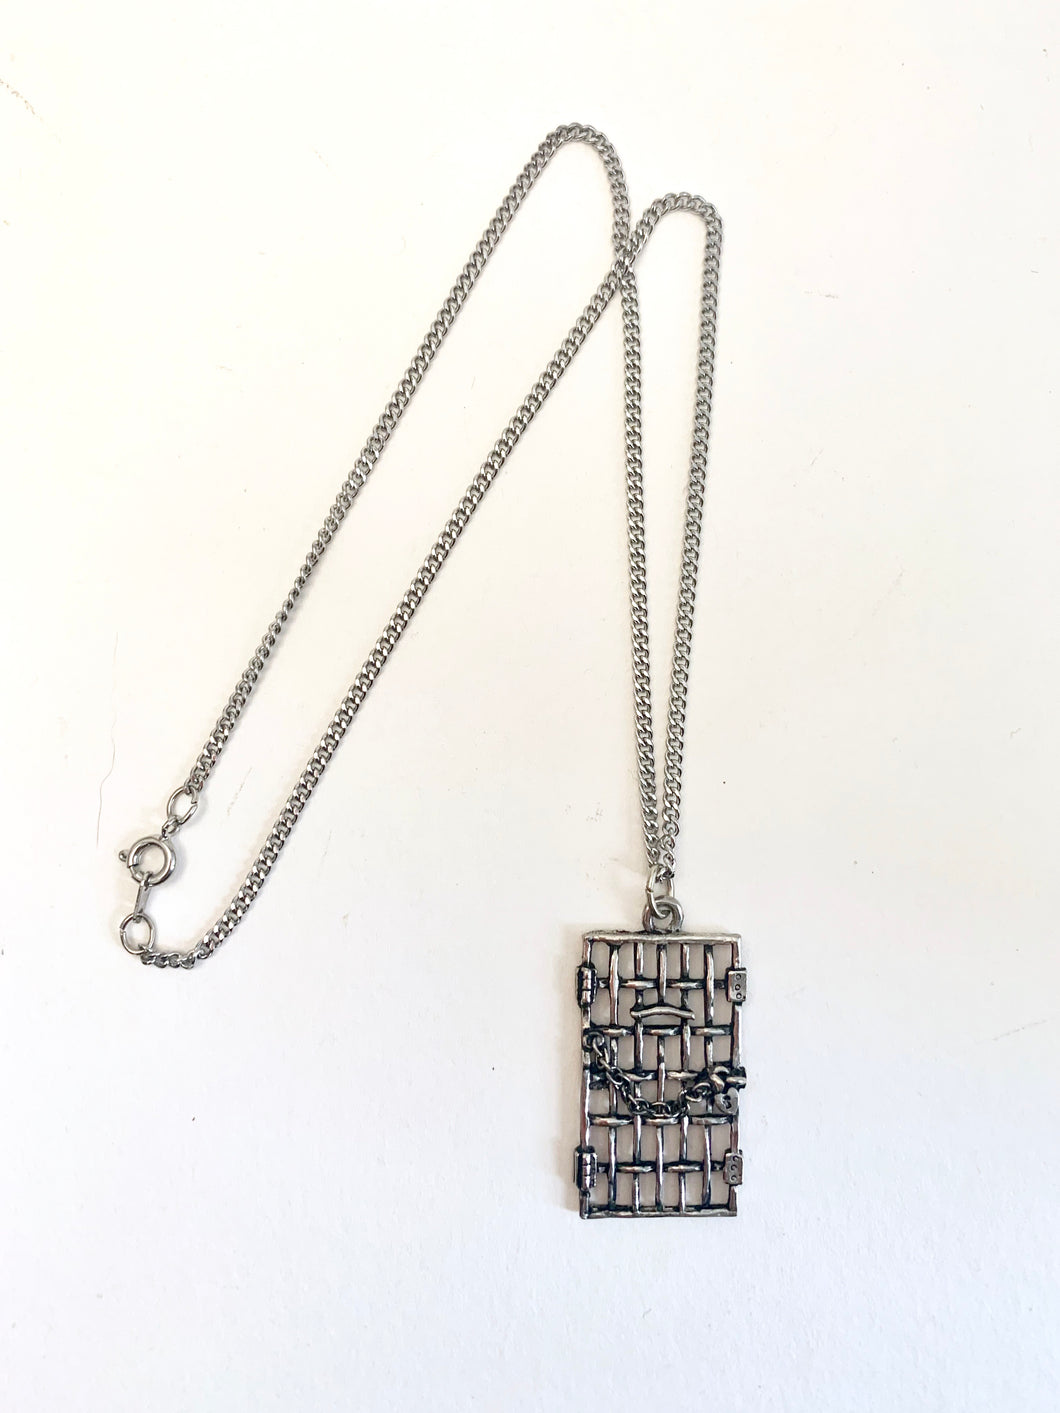 Jailhouse Door Necklace